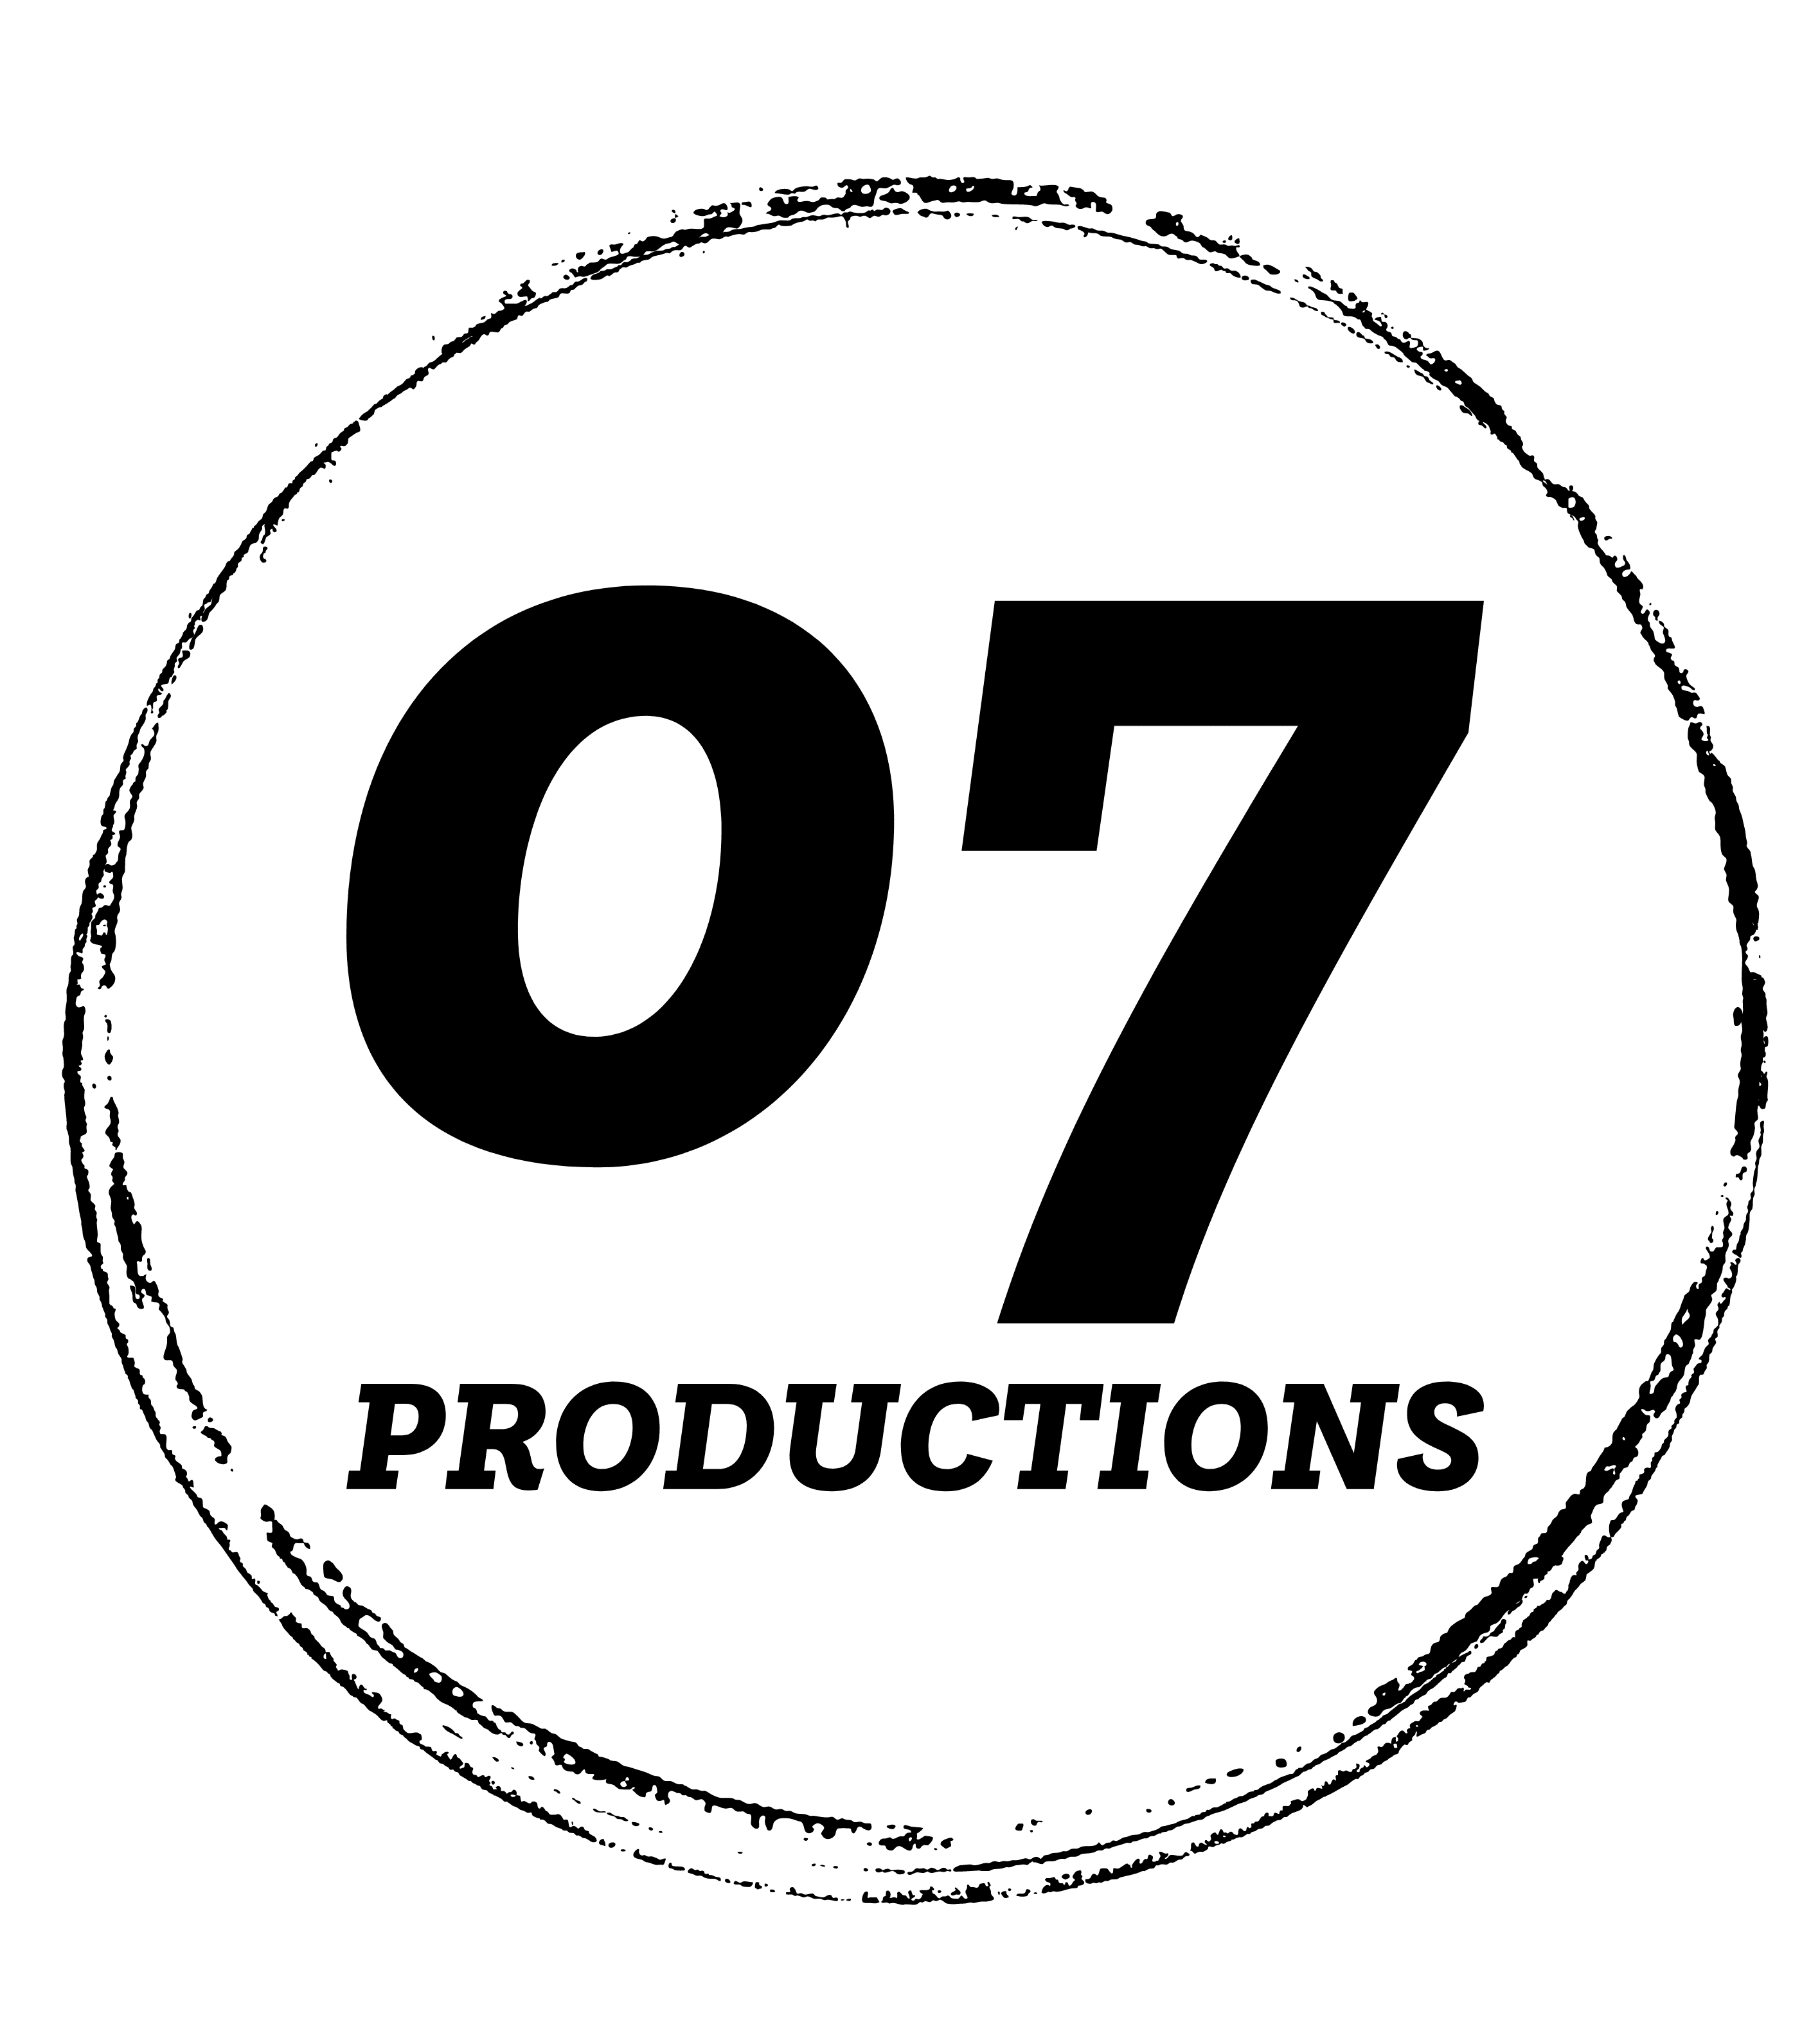 07 Productions